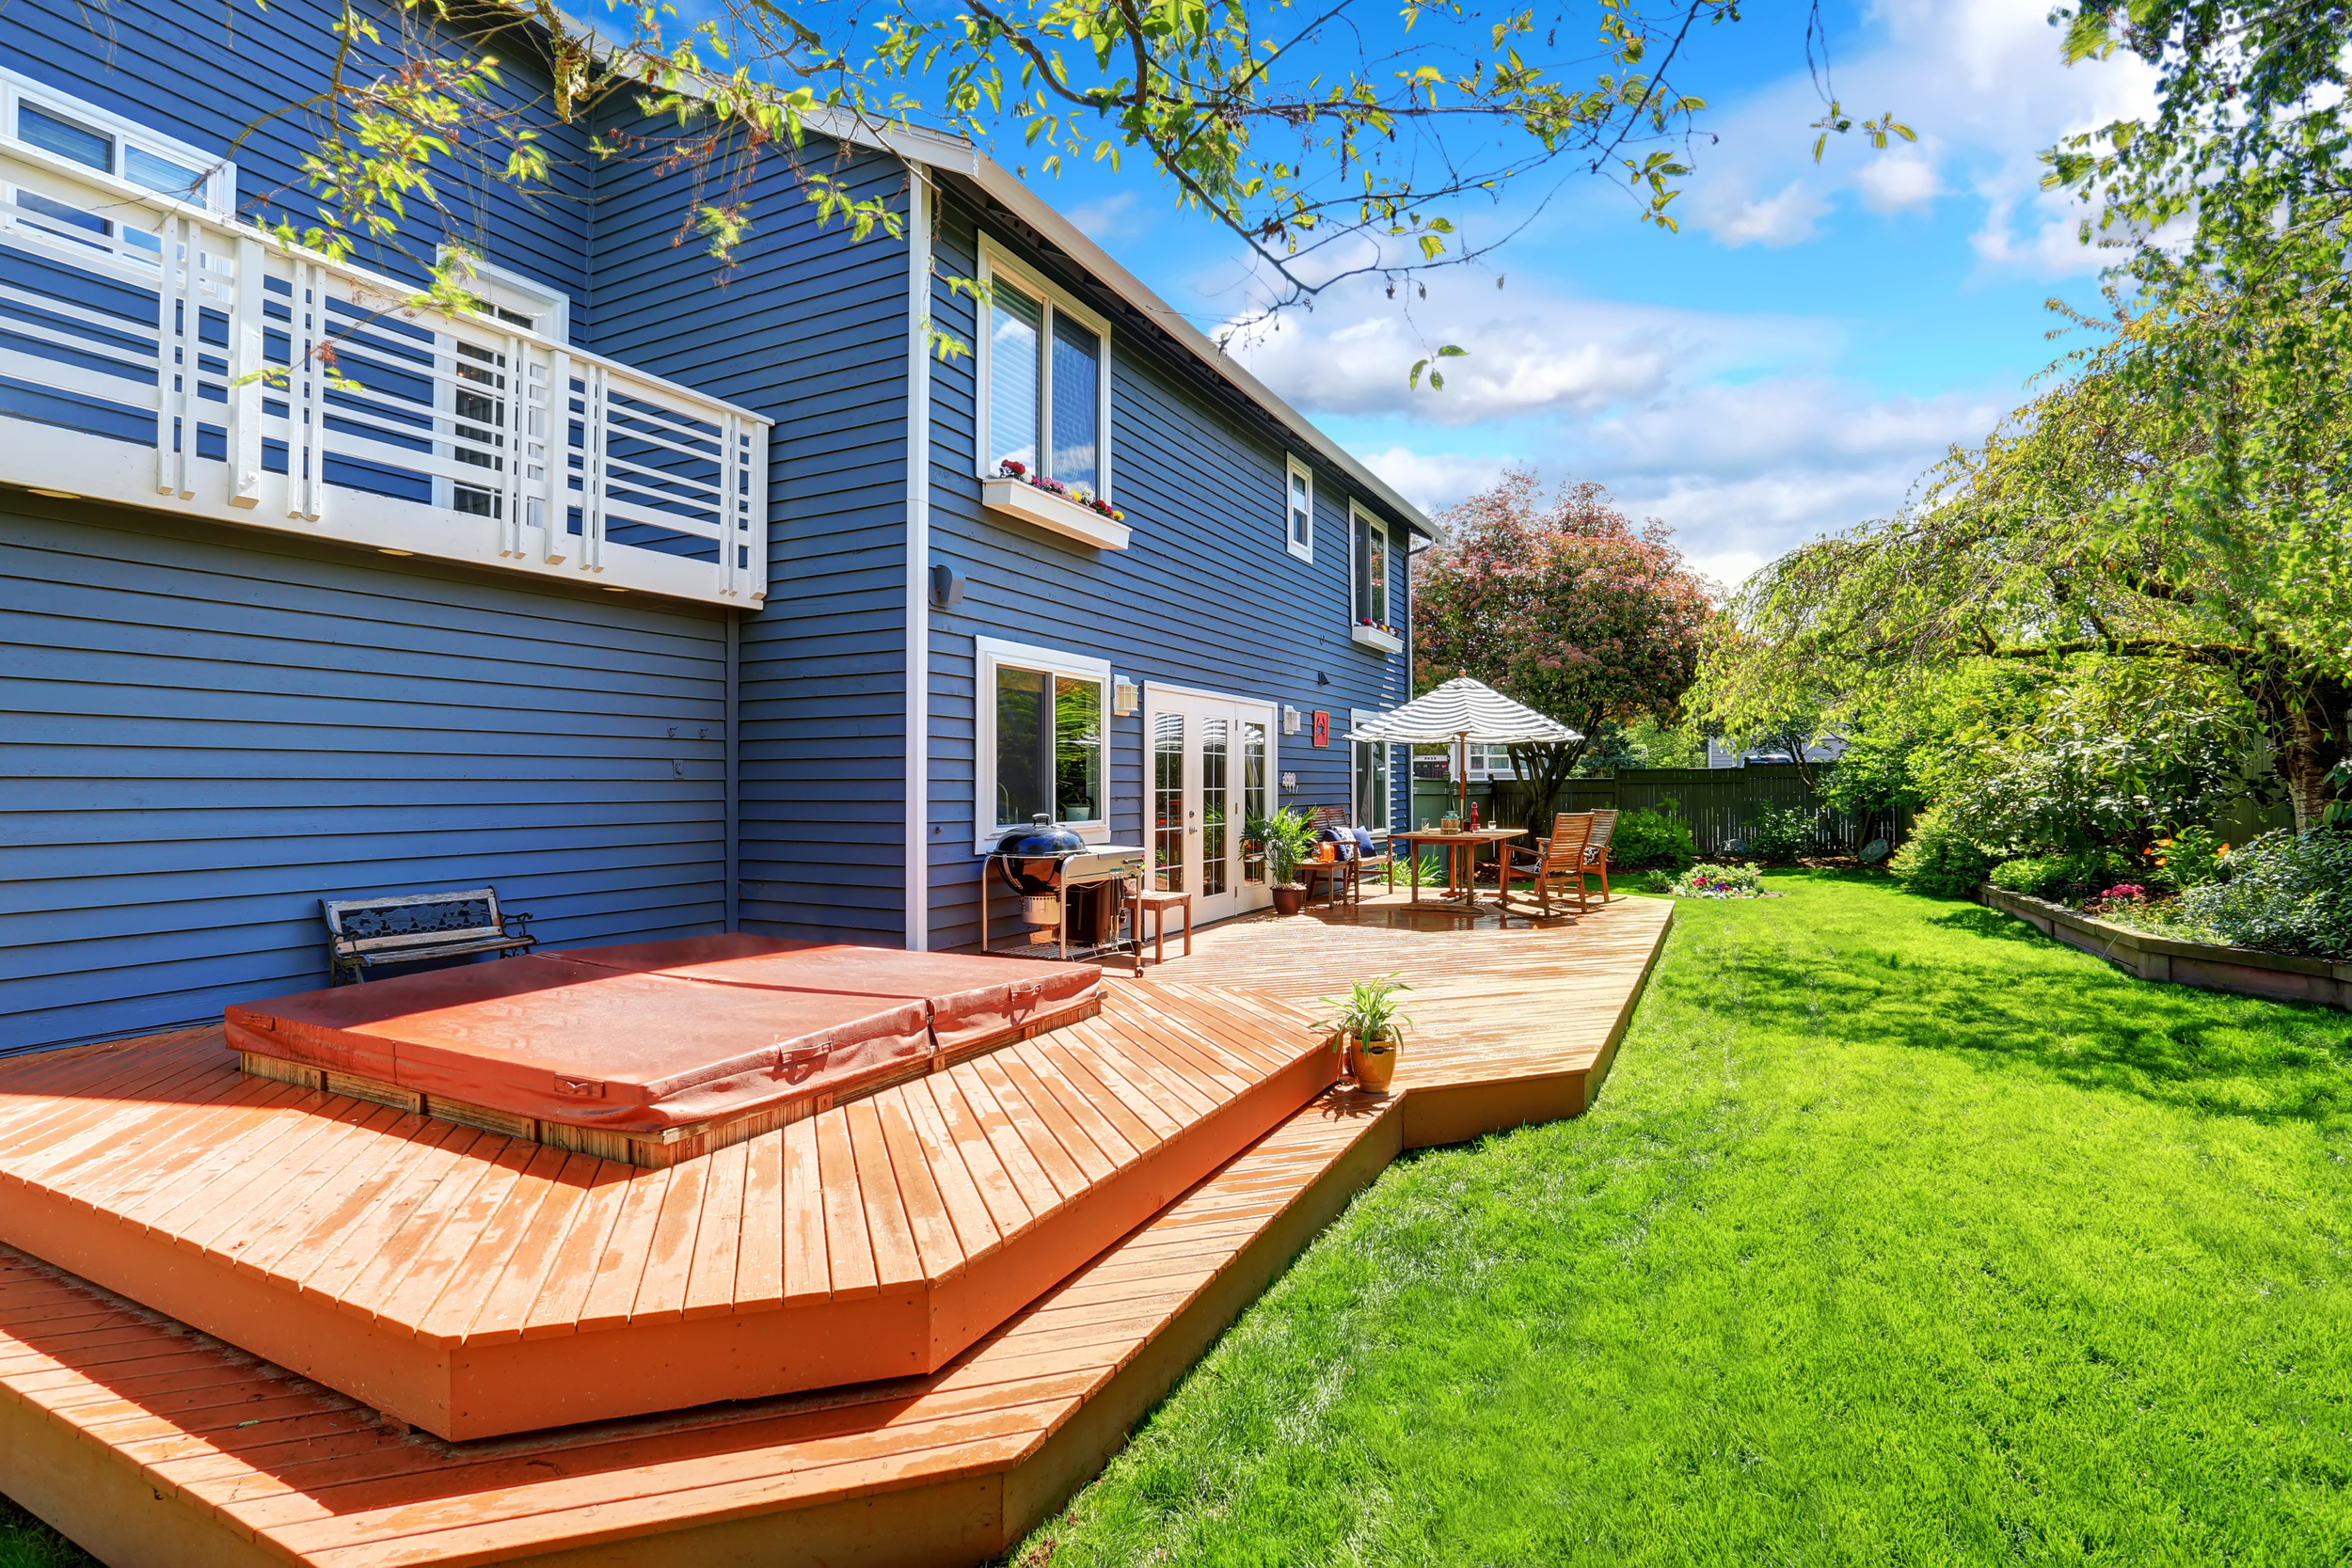 Large back deck with hot tub with blue house